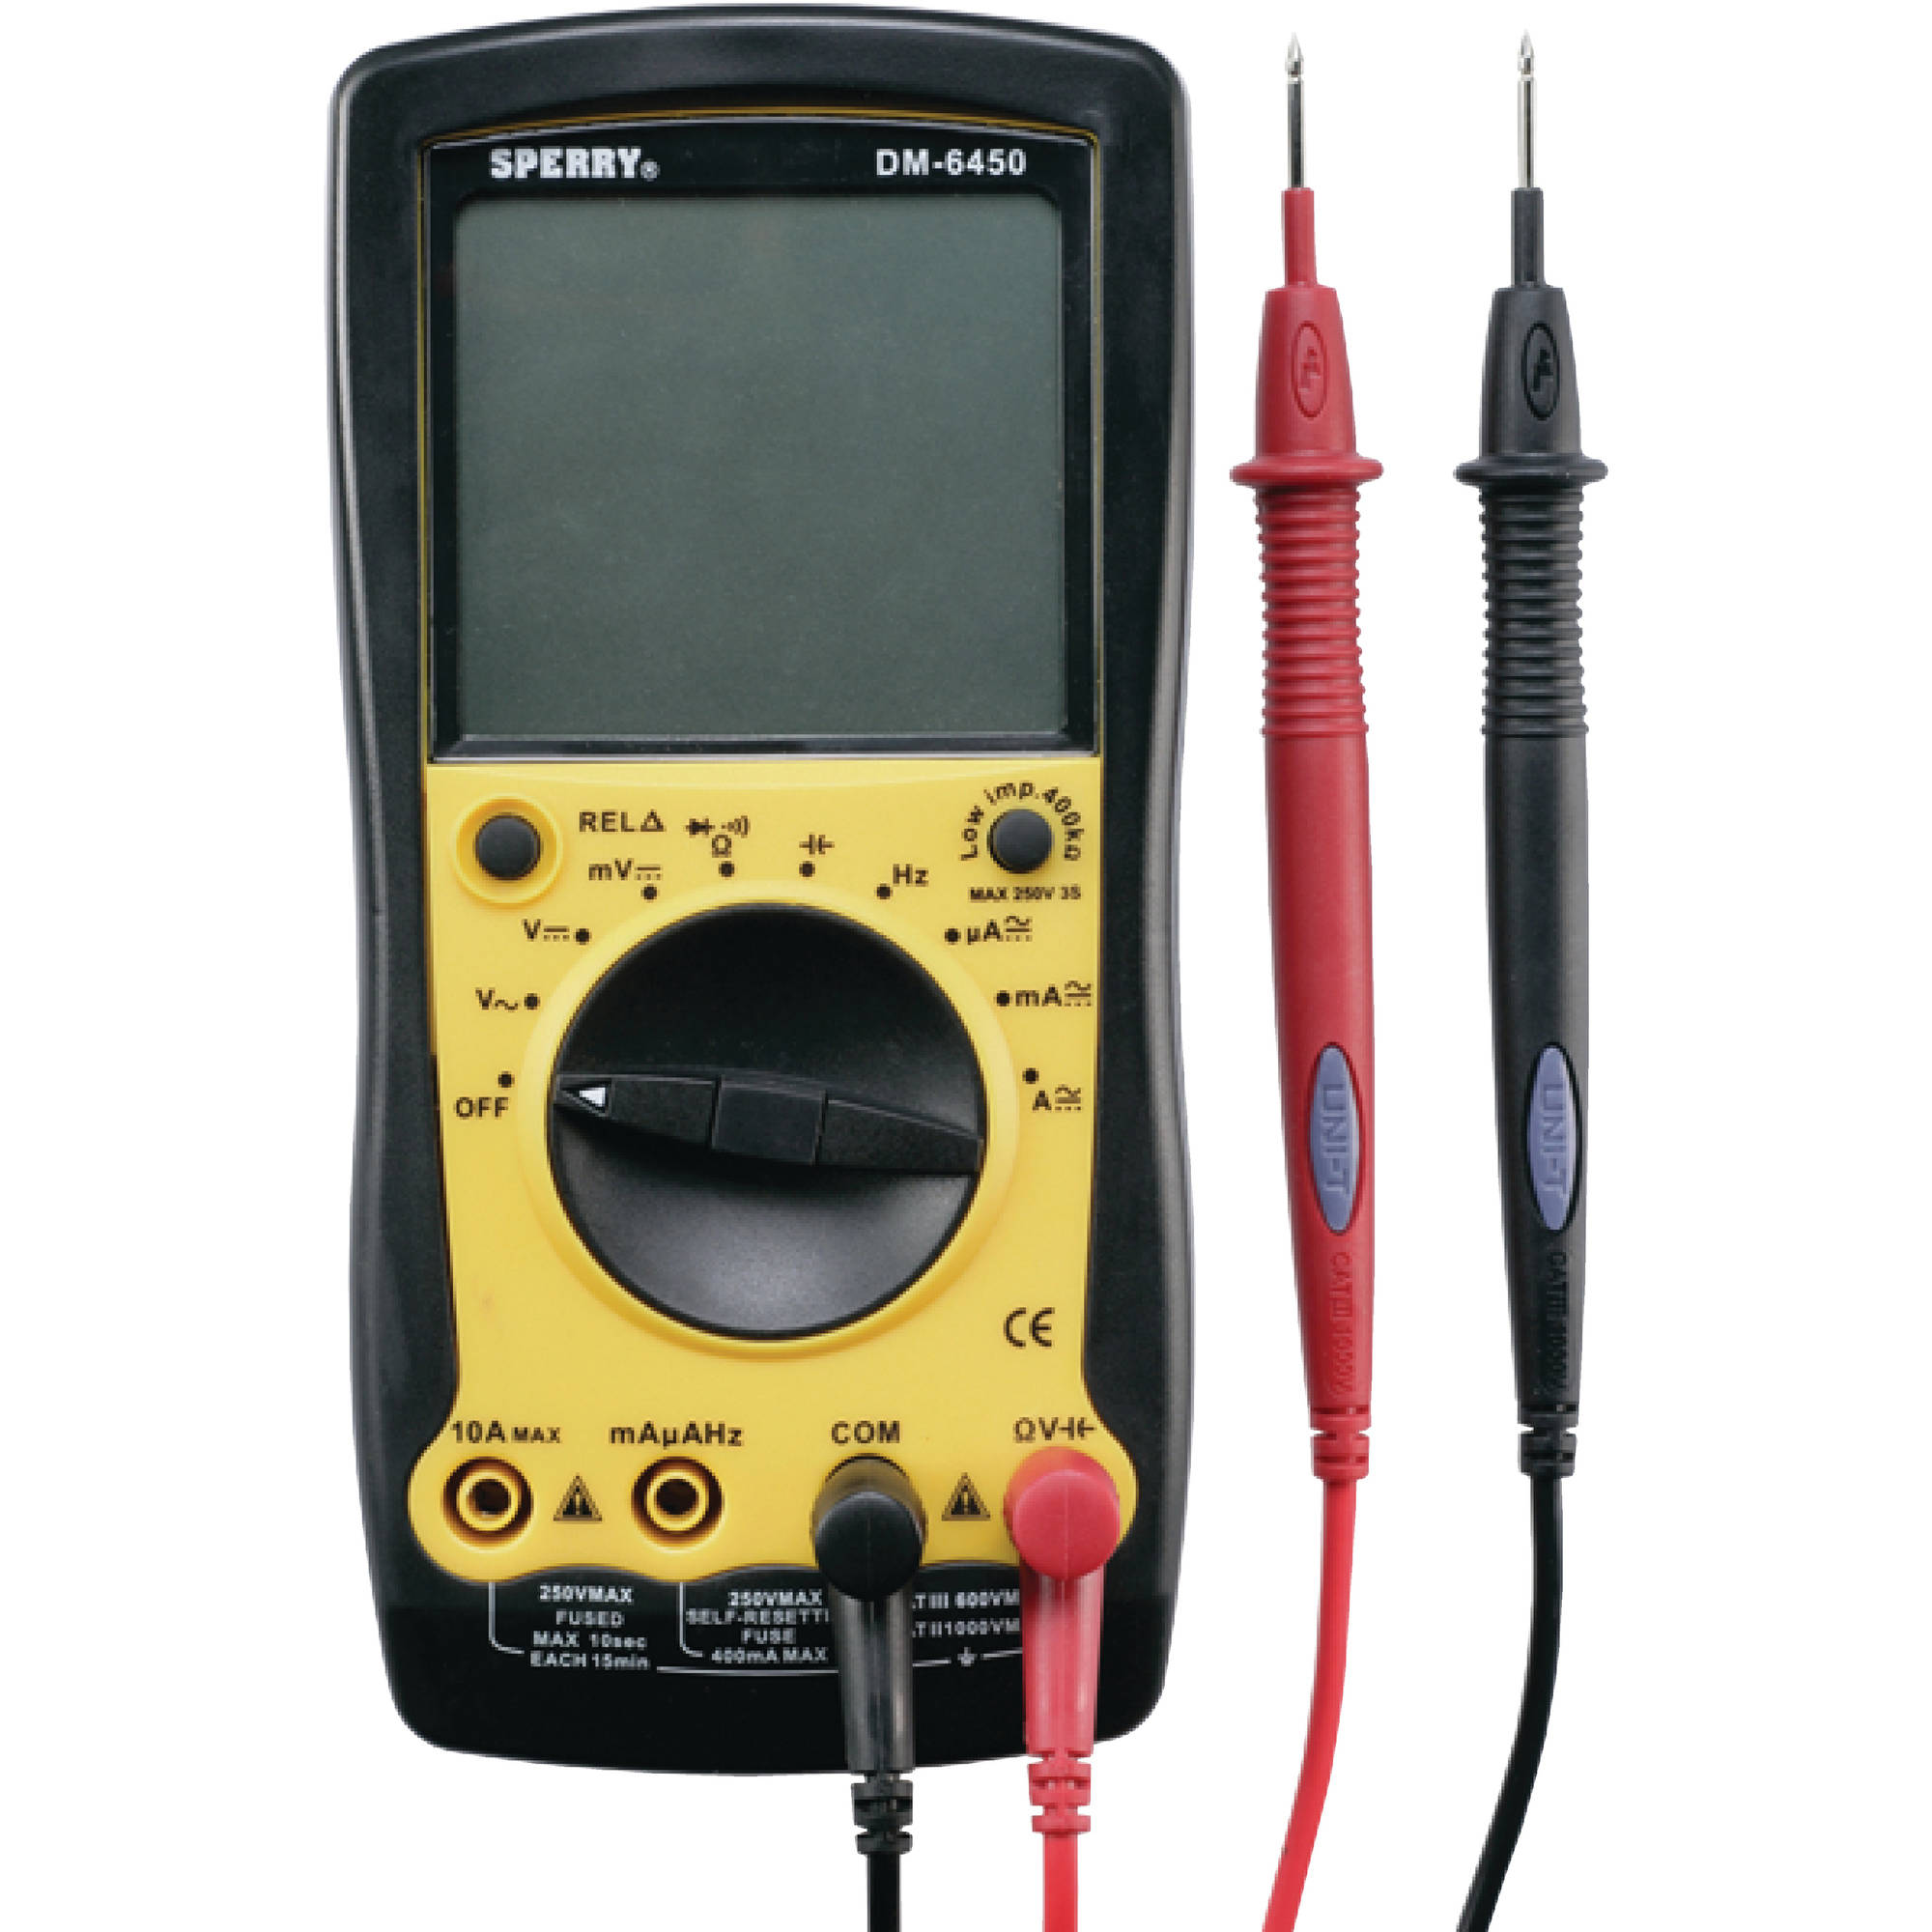 Marinco DM6450 9 Function Digitial Multimeter (Requires one 9V Battery Not Included)